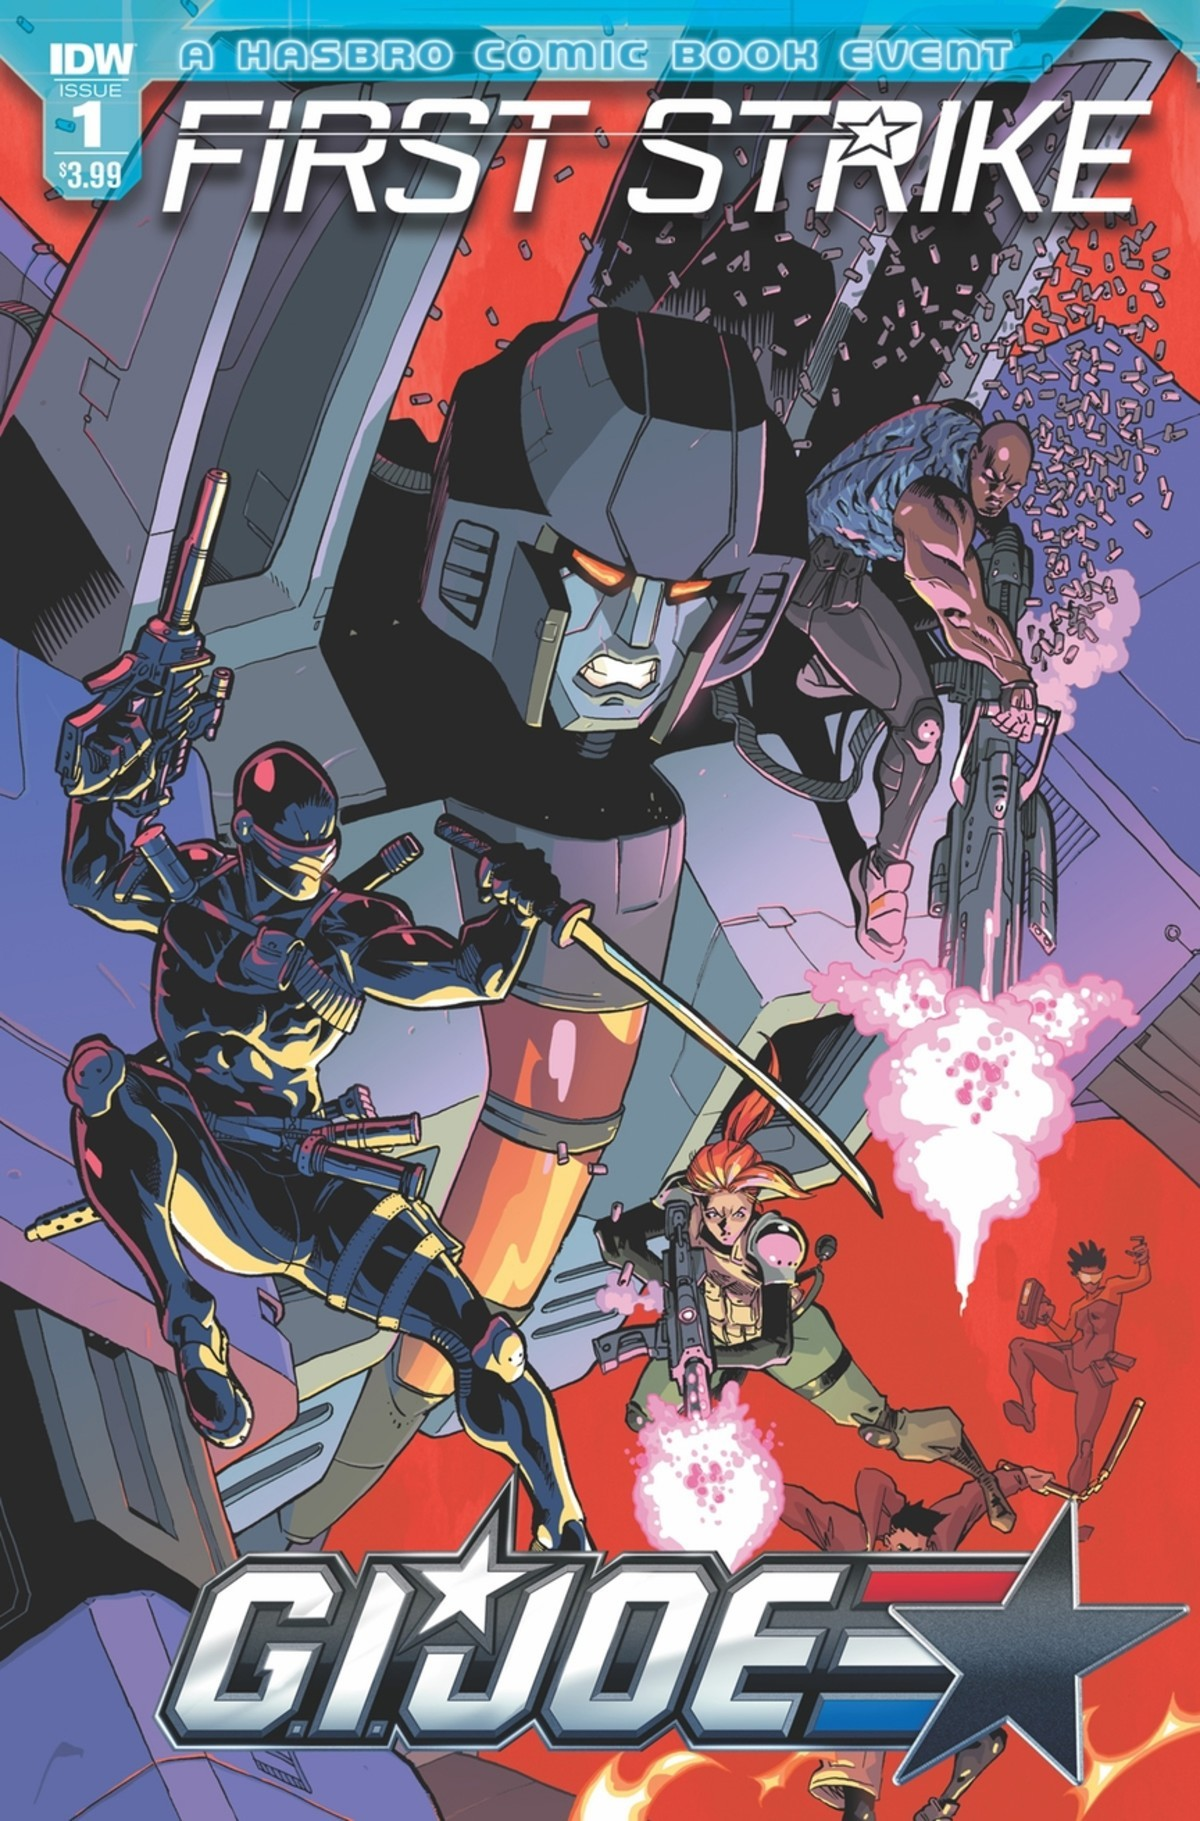 Transformers News: Unlettered Preview for IDW First Strike #1, Plus Writer Interview and More Covers